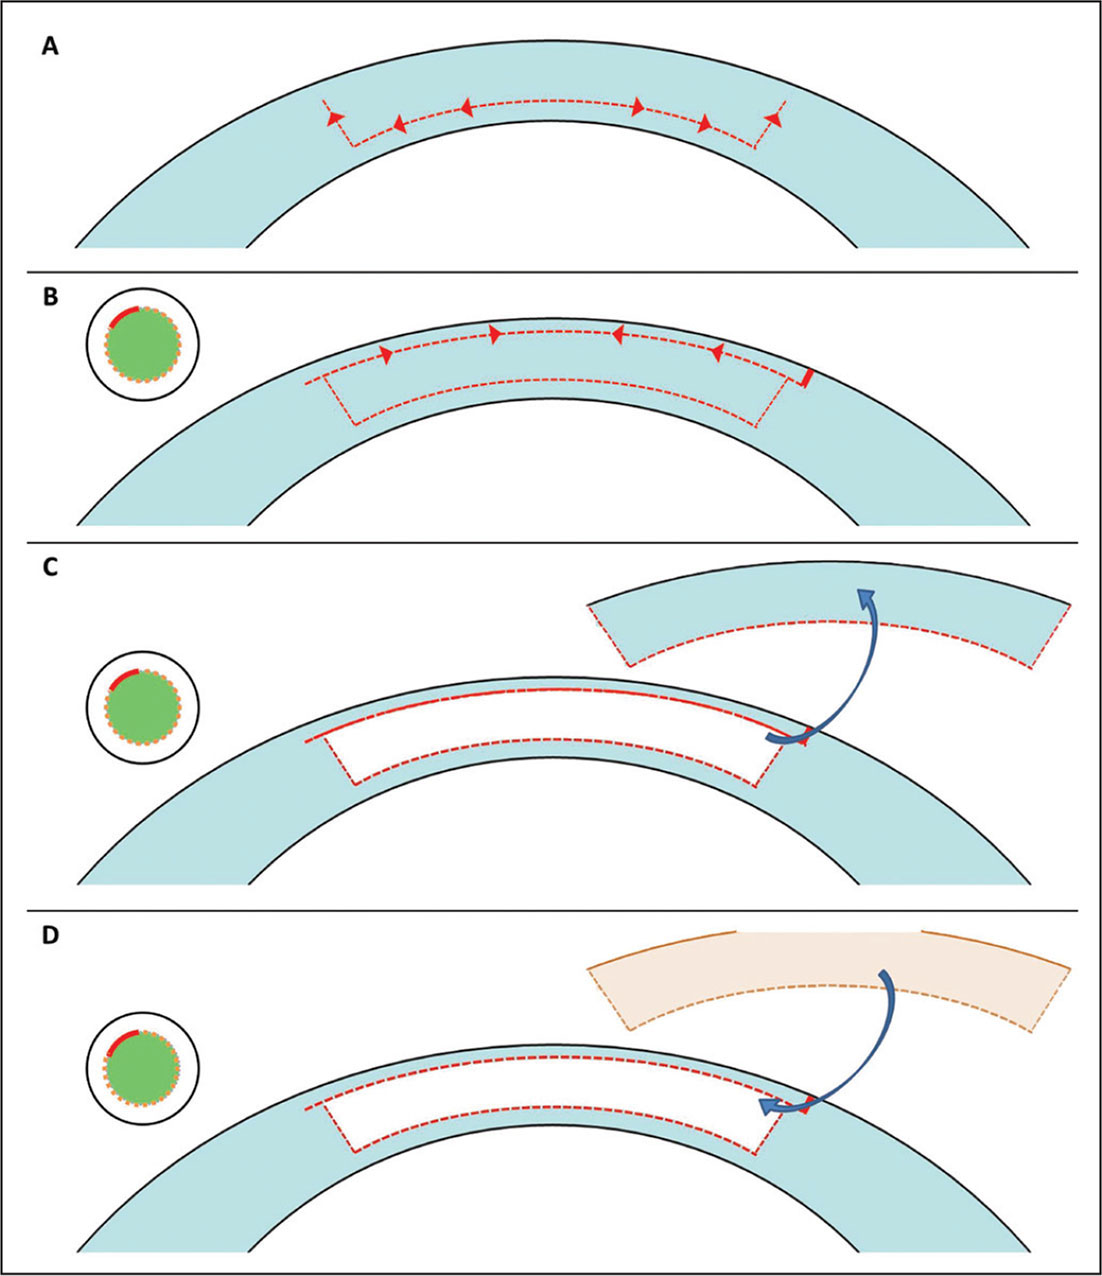 Diagrammatic representation of the steps involving recipient tissue preparation. (A) The initial deep interface and side cut using the deep anterior lamellar keratoplasty software license. A suction loss was generated when the side cut was 65% completed. (B) A laser in situ keratomileusis software license was used to create the anterior cut of the lenticule. The hinge was set to 330°. (C) The tissue removal was planned to leave 125 µm of anterior corneal stromal tissue and 140 µm of posterior corneal tissue. (D) The donor stromal lenticule was implanted into the recipient through the same small incision.